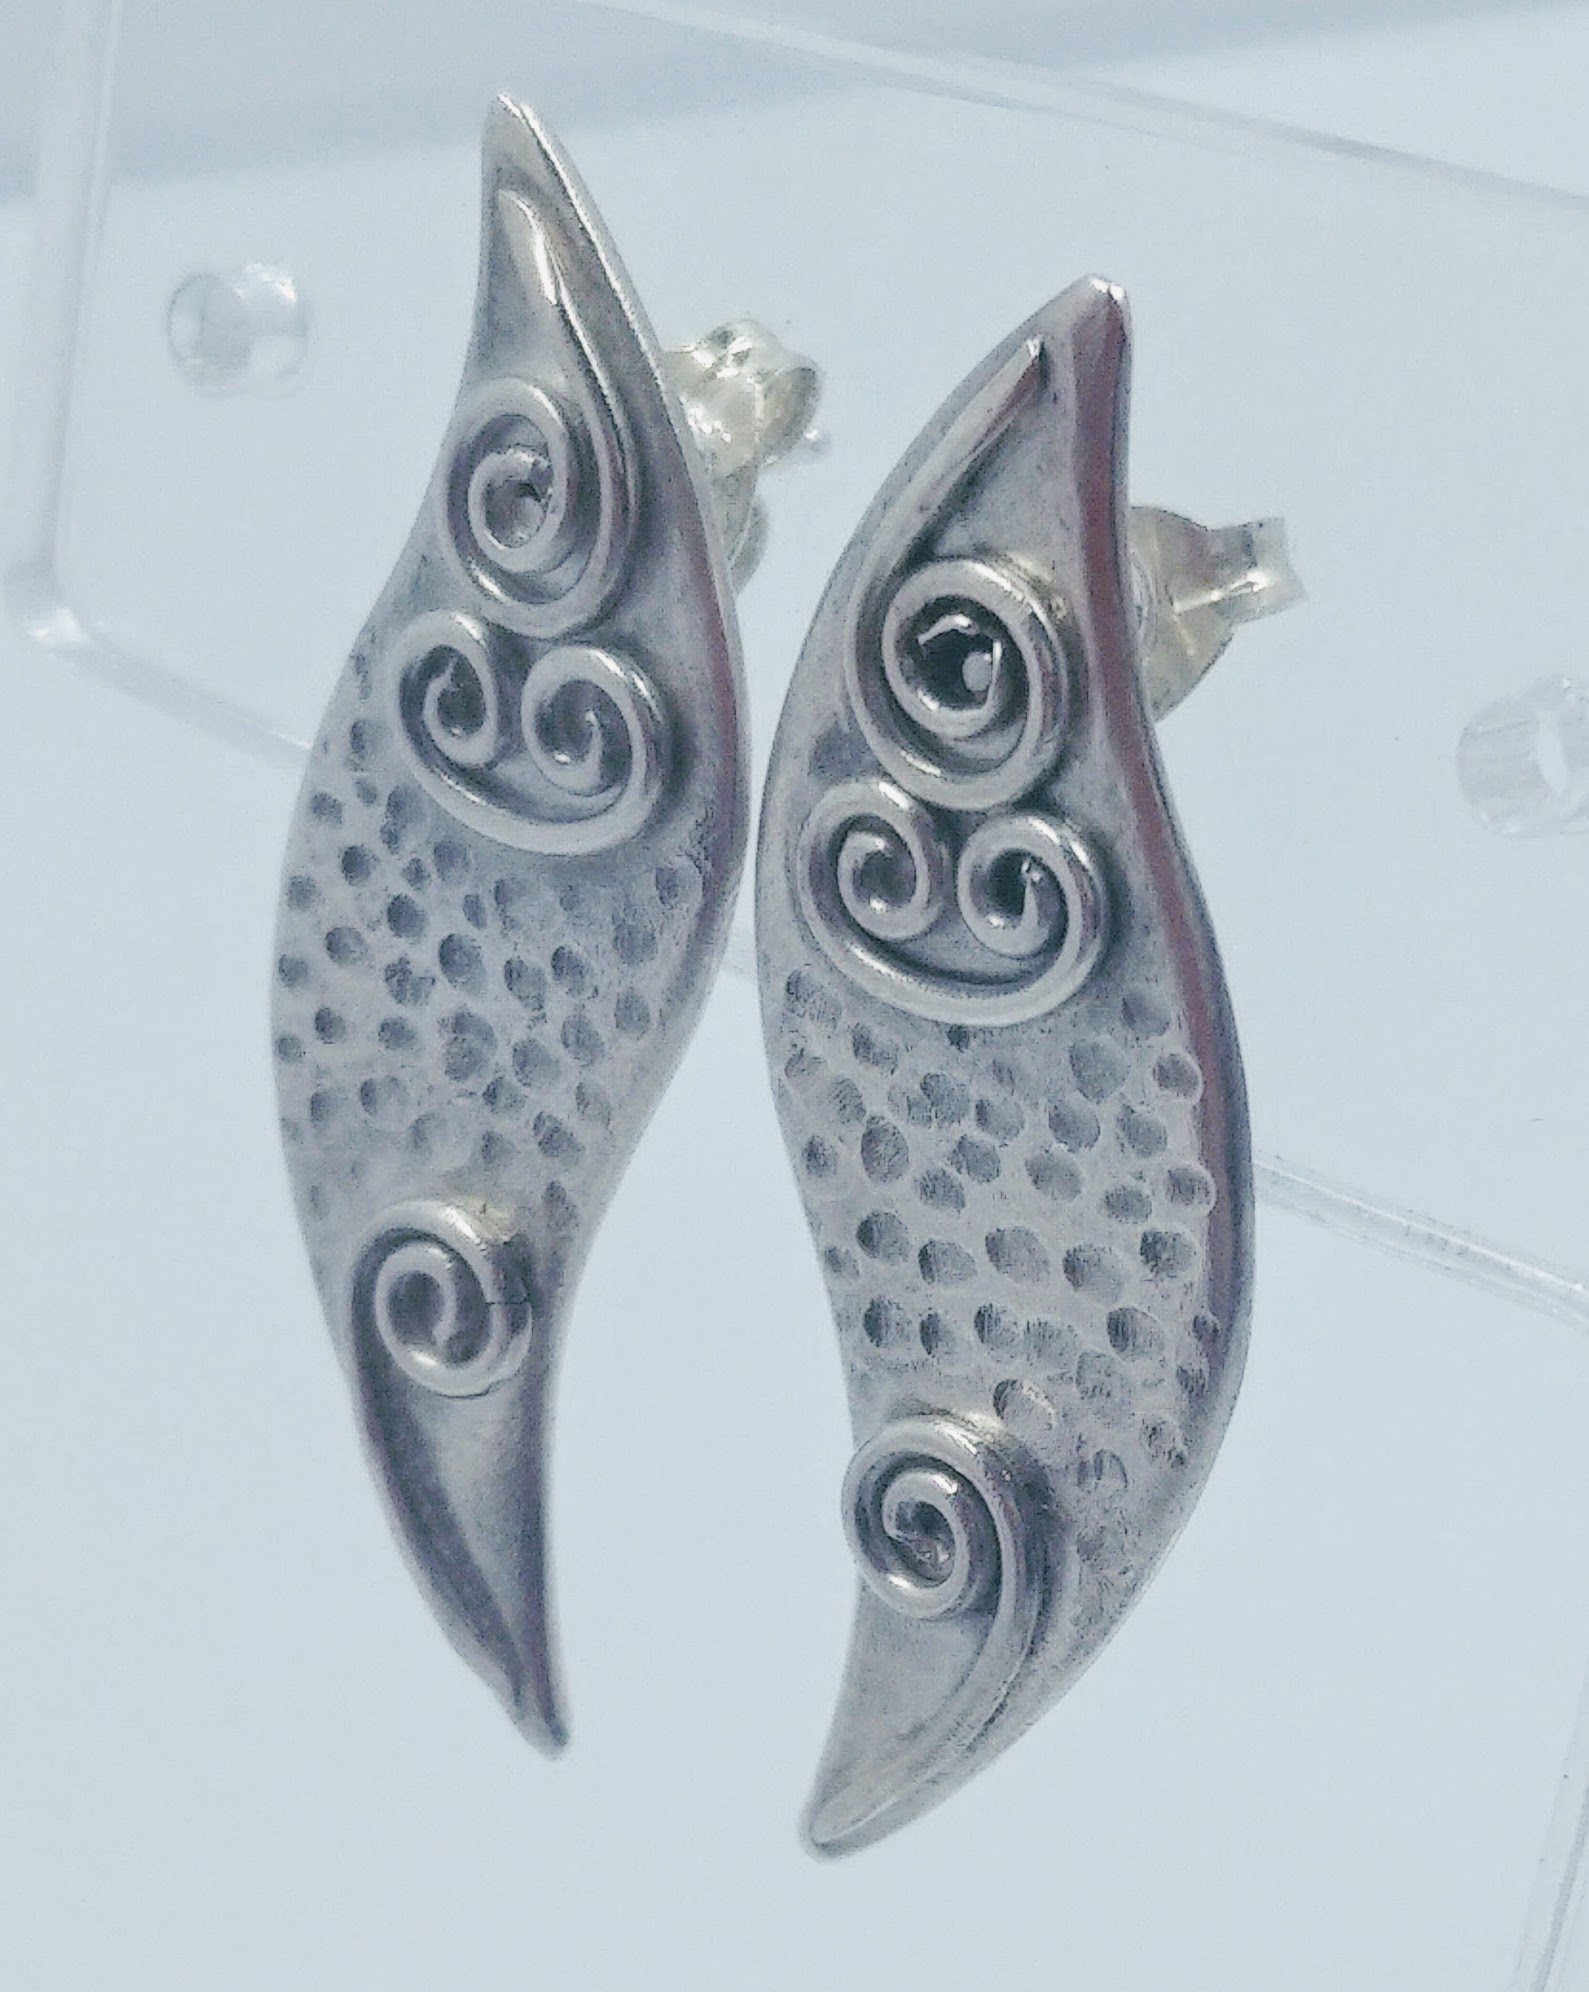 Silver textured earrings with wirework detail -  BUY